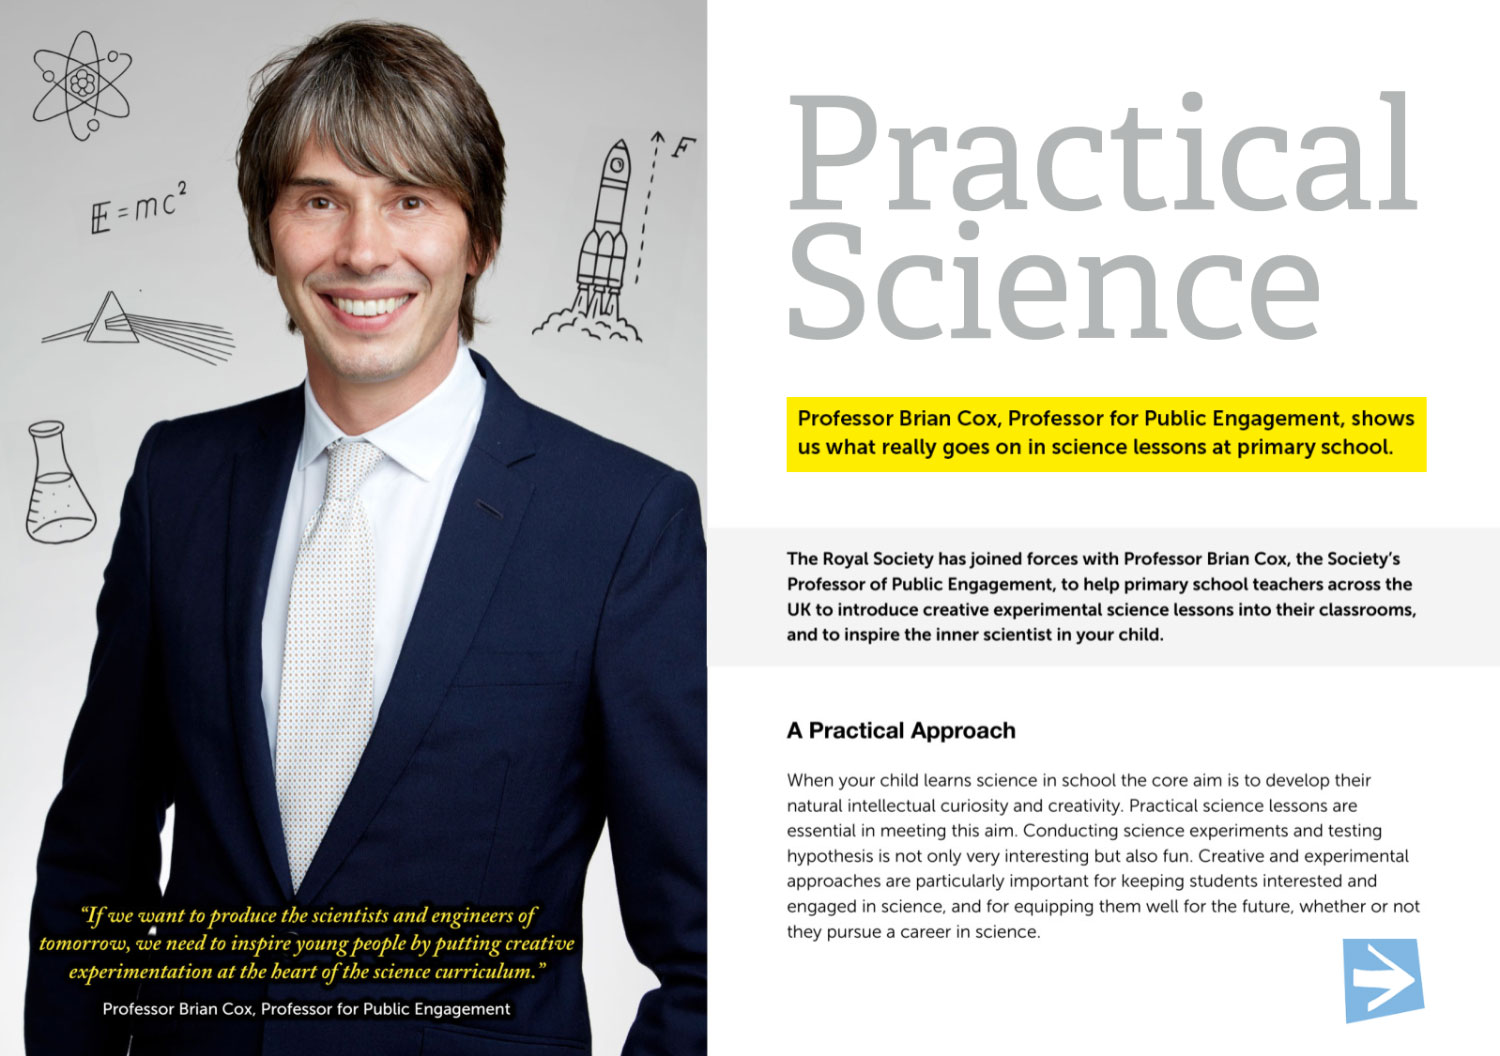 Practical-Science-Professor-Brian-Cox